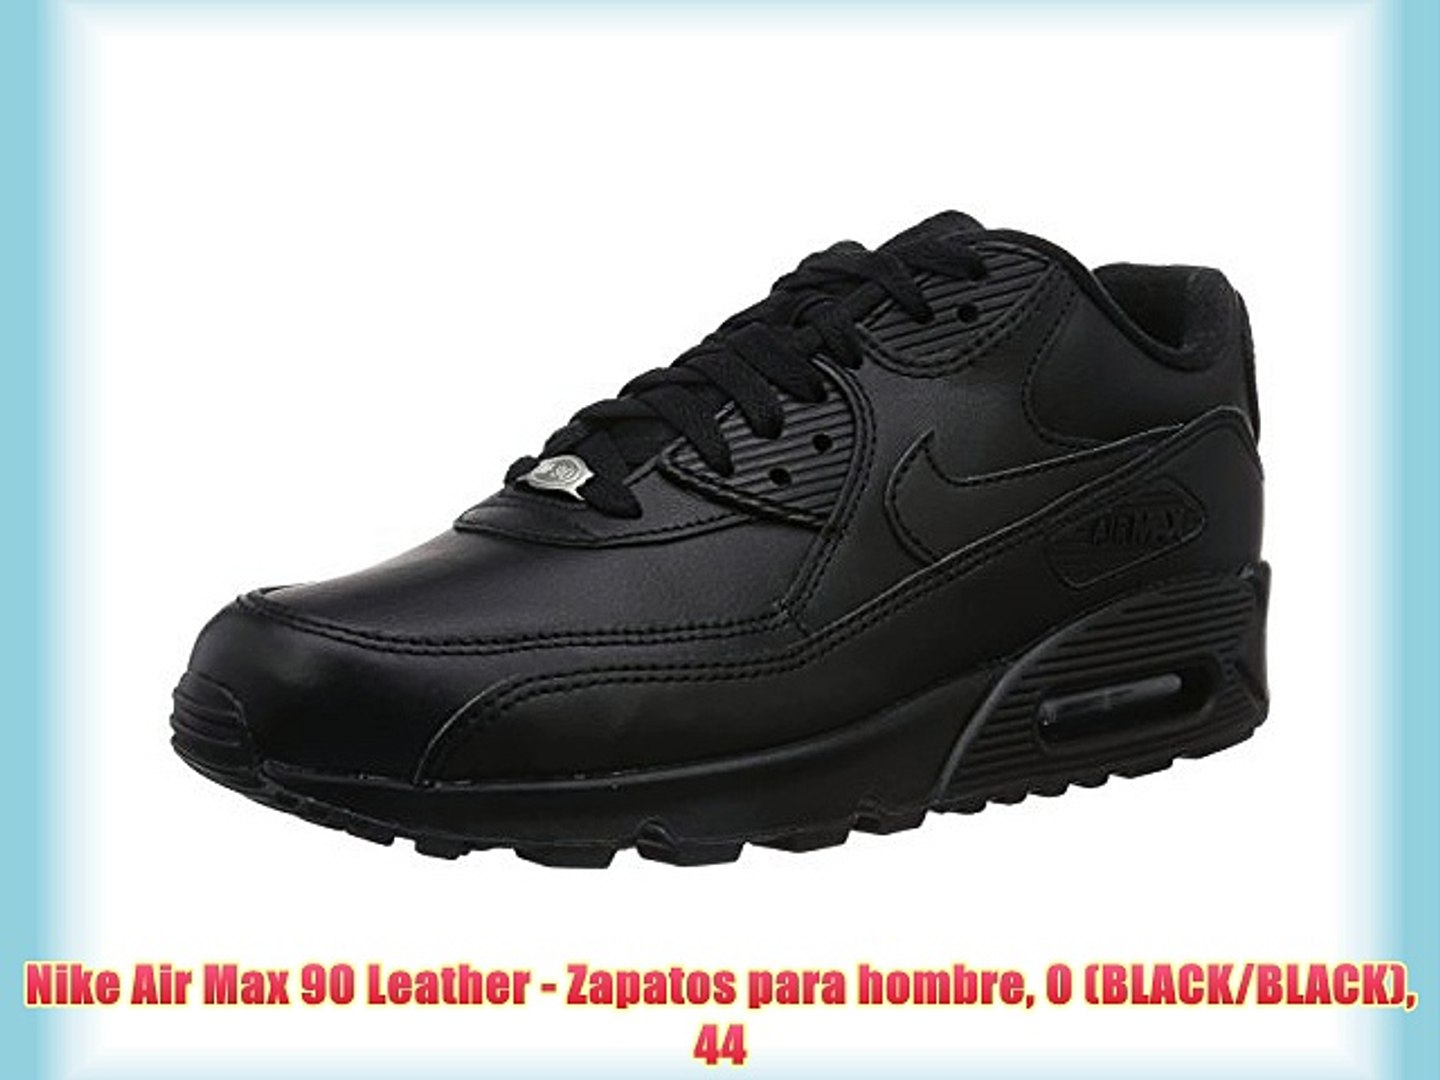 Nike Air Max 90 Leather - Zapatos para hombre 0 (BLACK/BLACK) 44